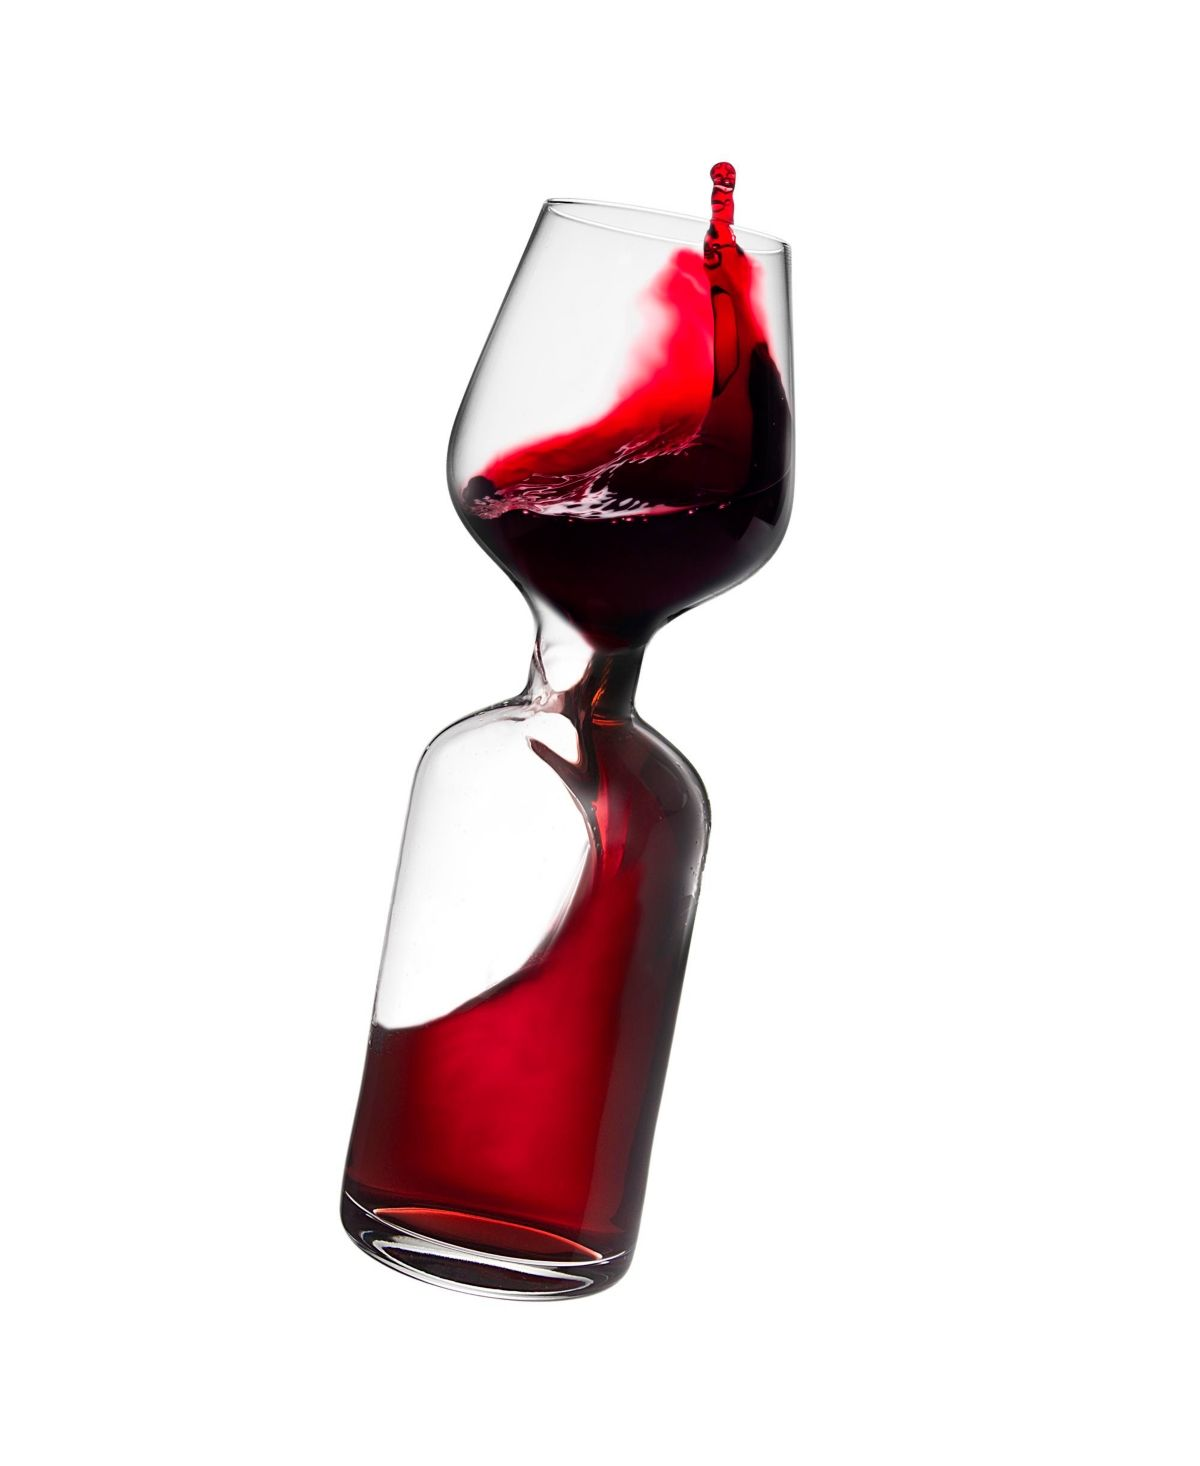 Godinger Glass In A Bottle Wine Goblet Reviews Glassware Drinkware Dining Macy S In 2020 Wine Goblets Wine Wine Bottle